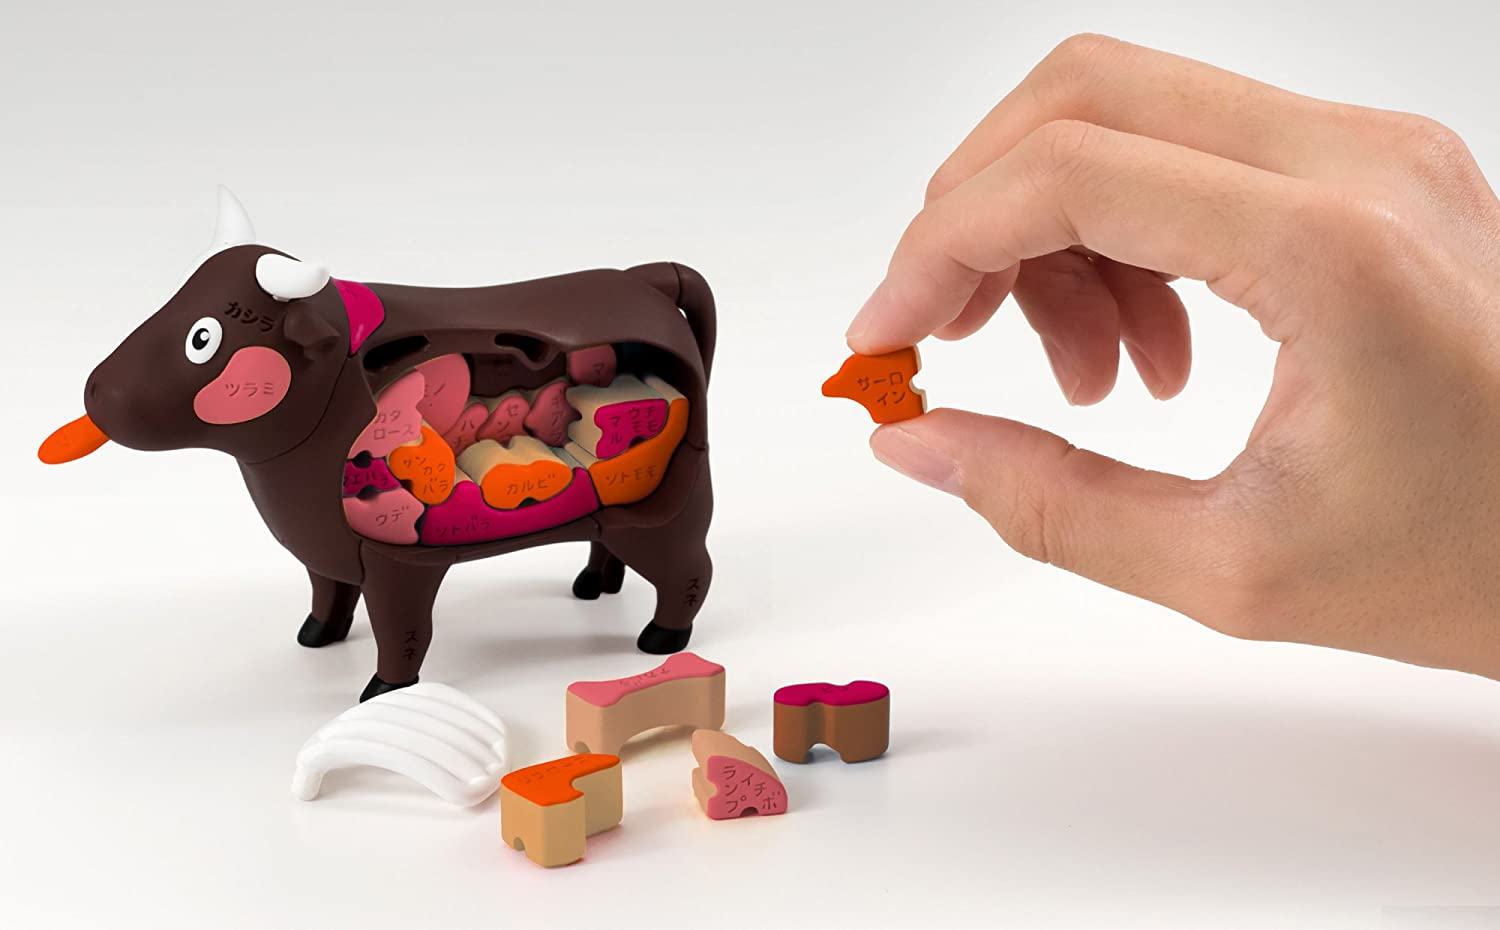 Megahouse Cow Demolition Puzzle from Japan